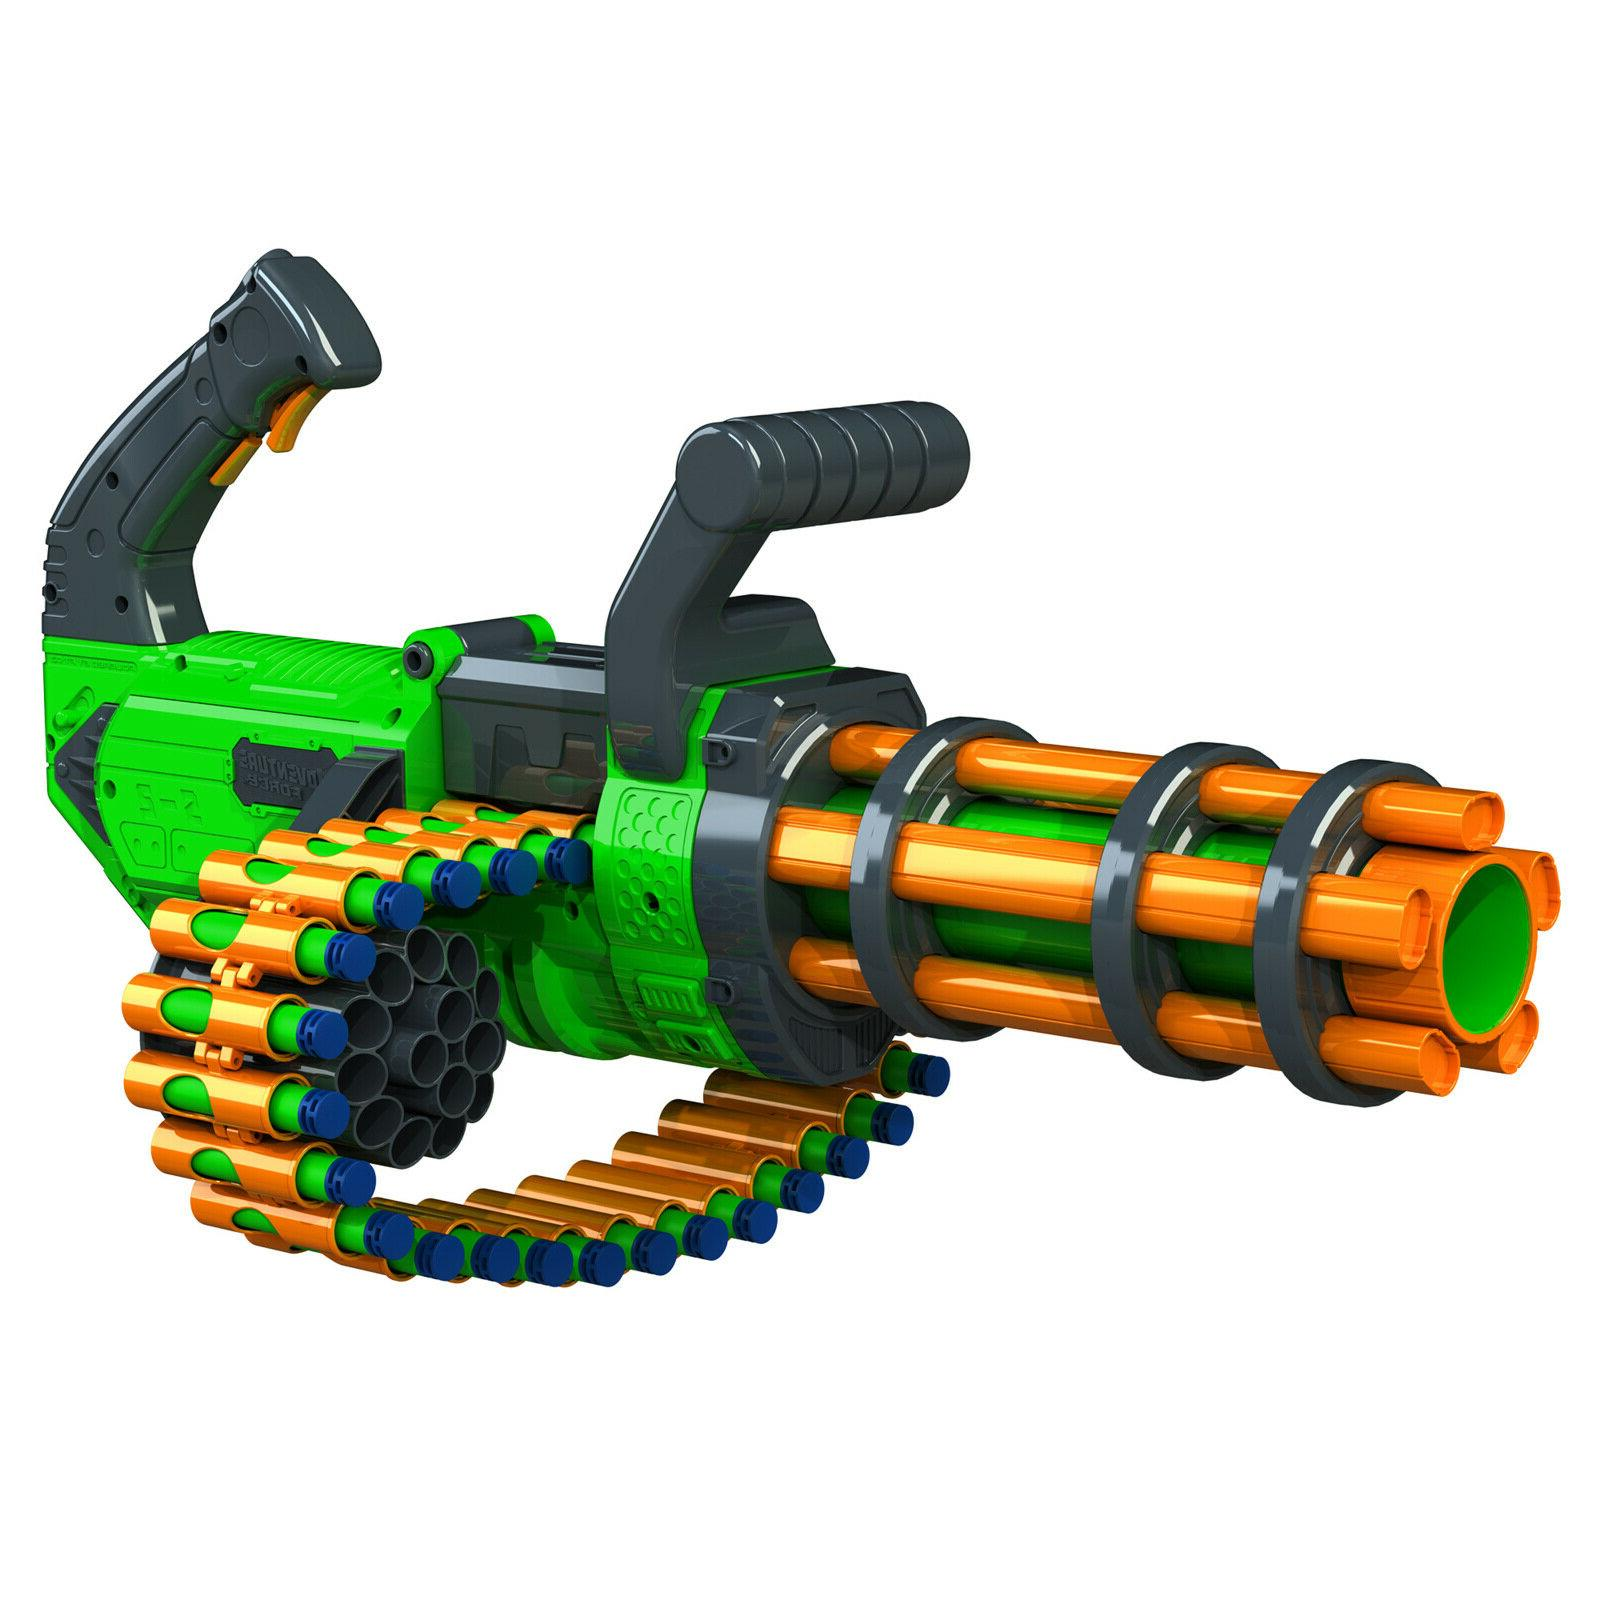 Automatic Rapid-Fire Belt Blaster